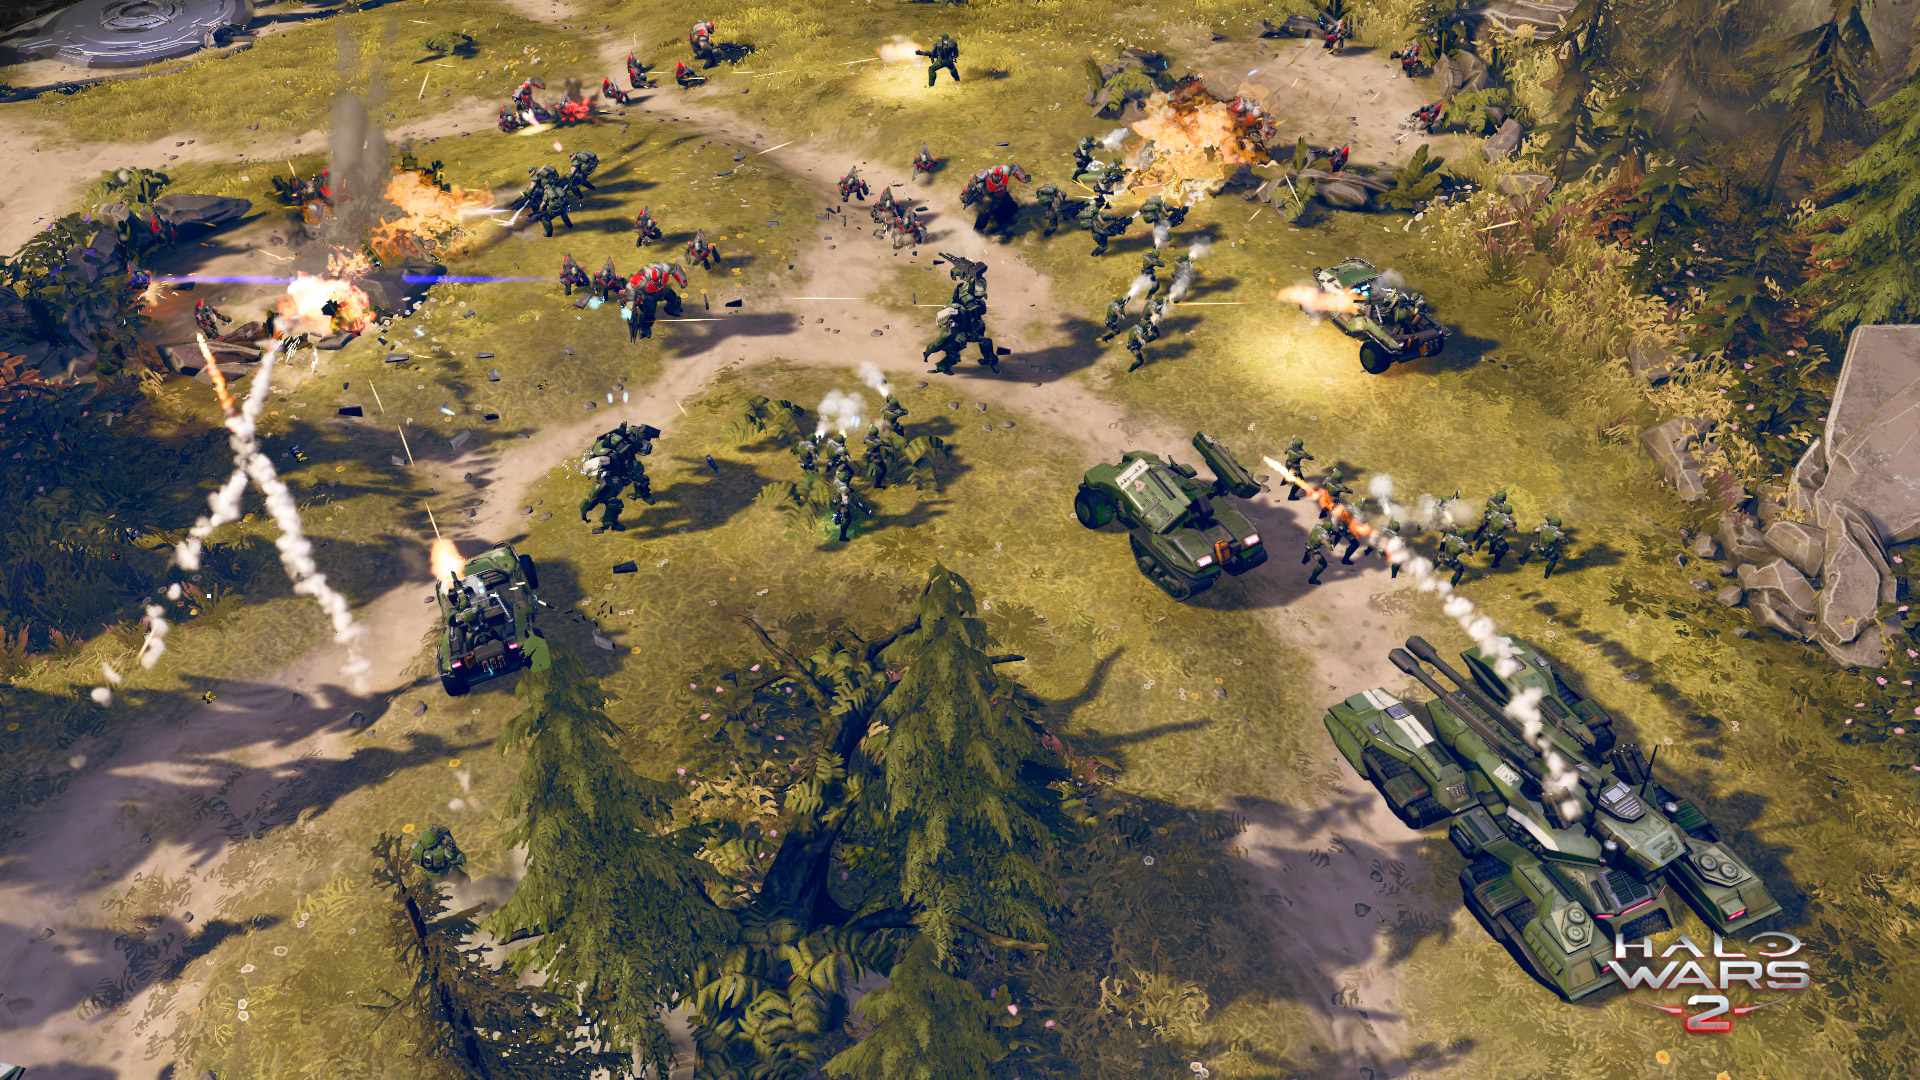 free map games of the united states with Halo Wars 2 on Burano Italy further Car Show besides Royalty Free Stock Image Summer Olympic Games Icons Set Image32537296 moreover Sic bo as well Flag South Dakota.